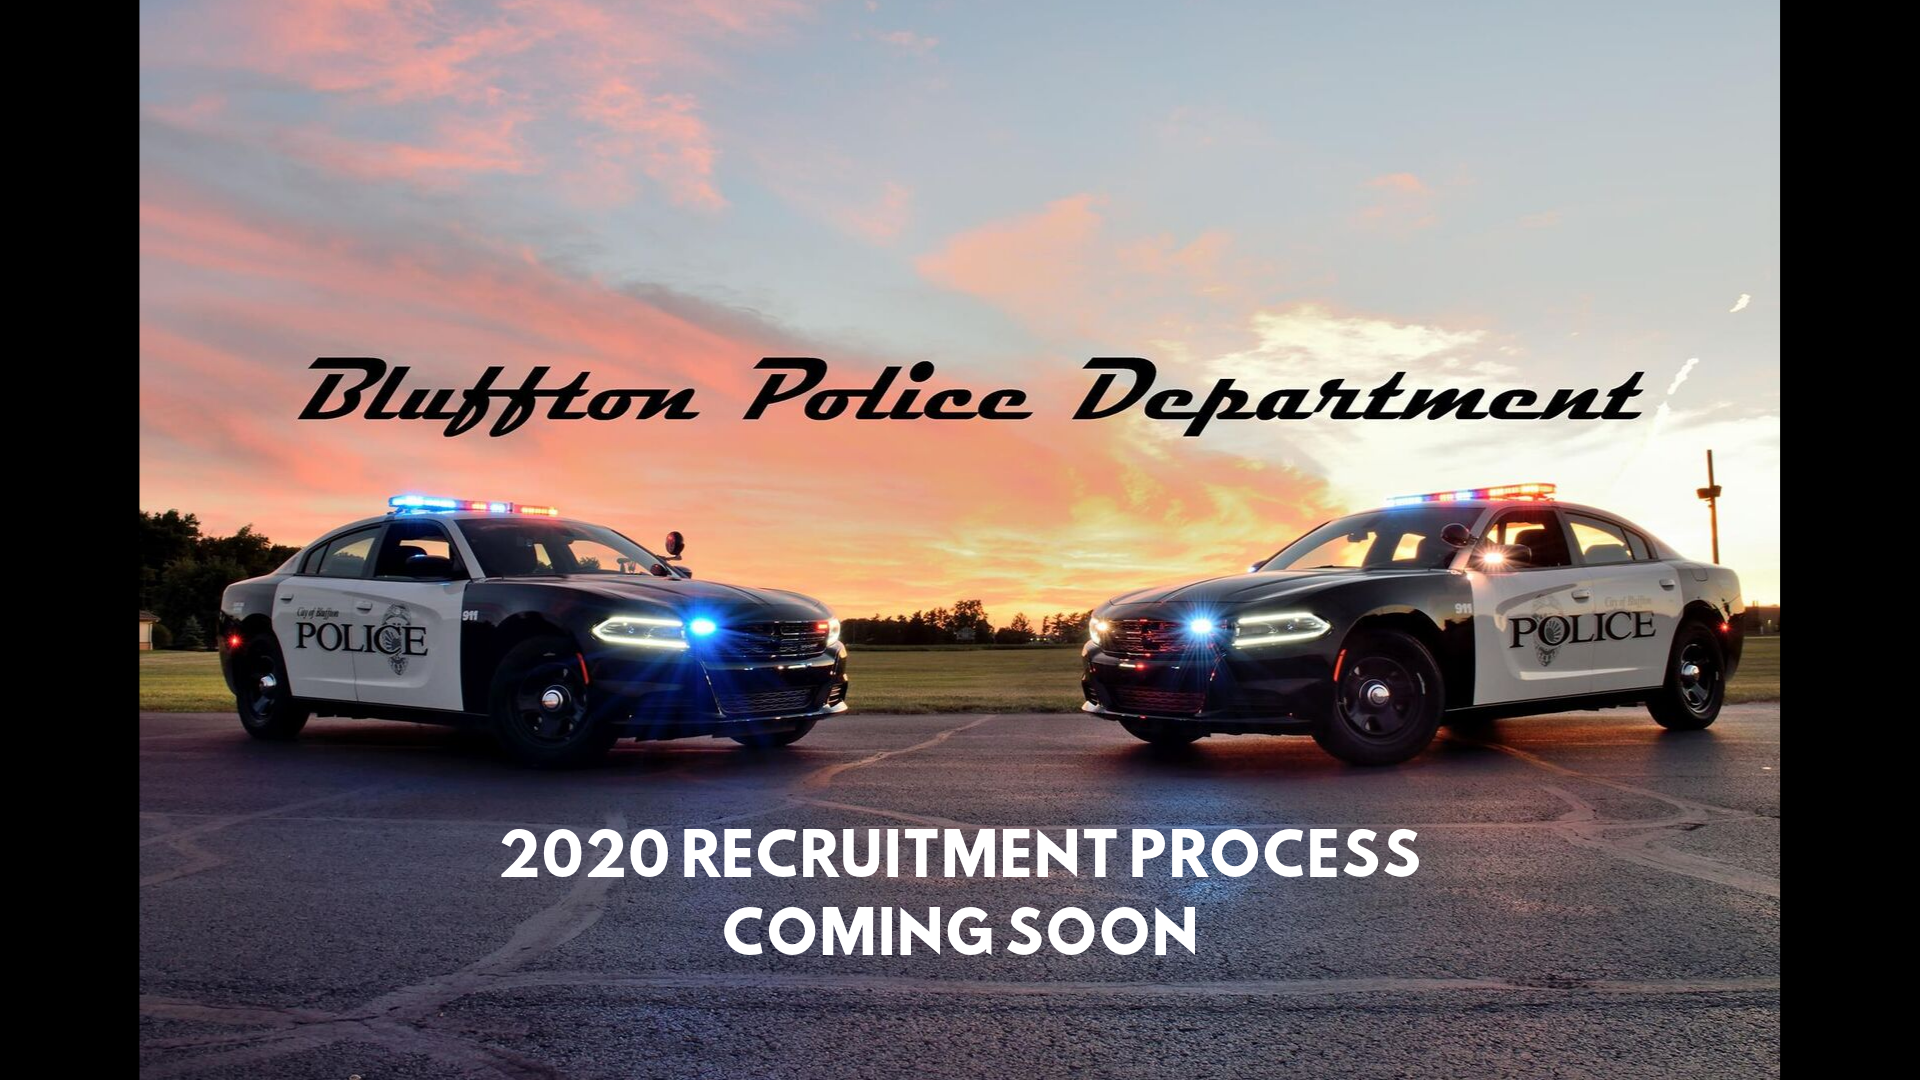 Bluffton Police Department, IN Police Jobs